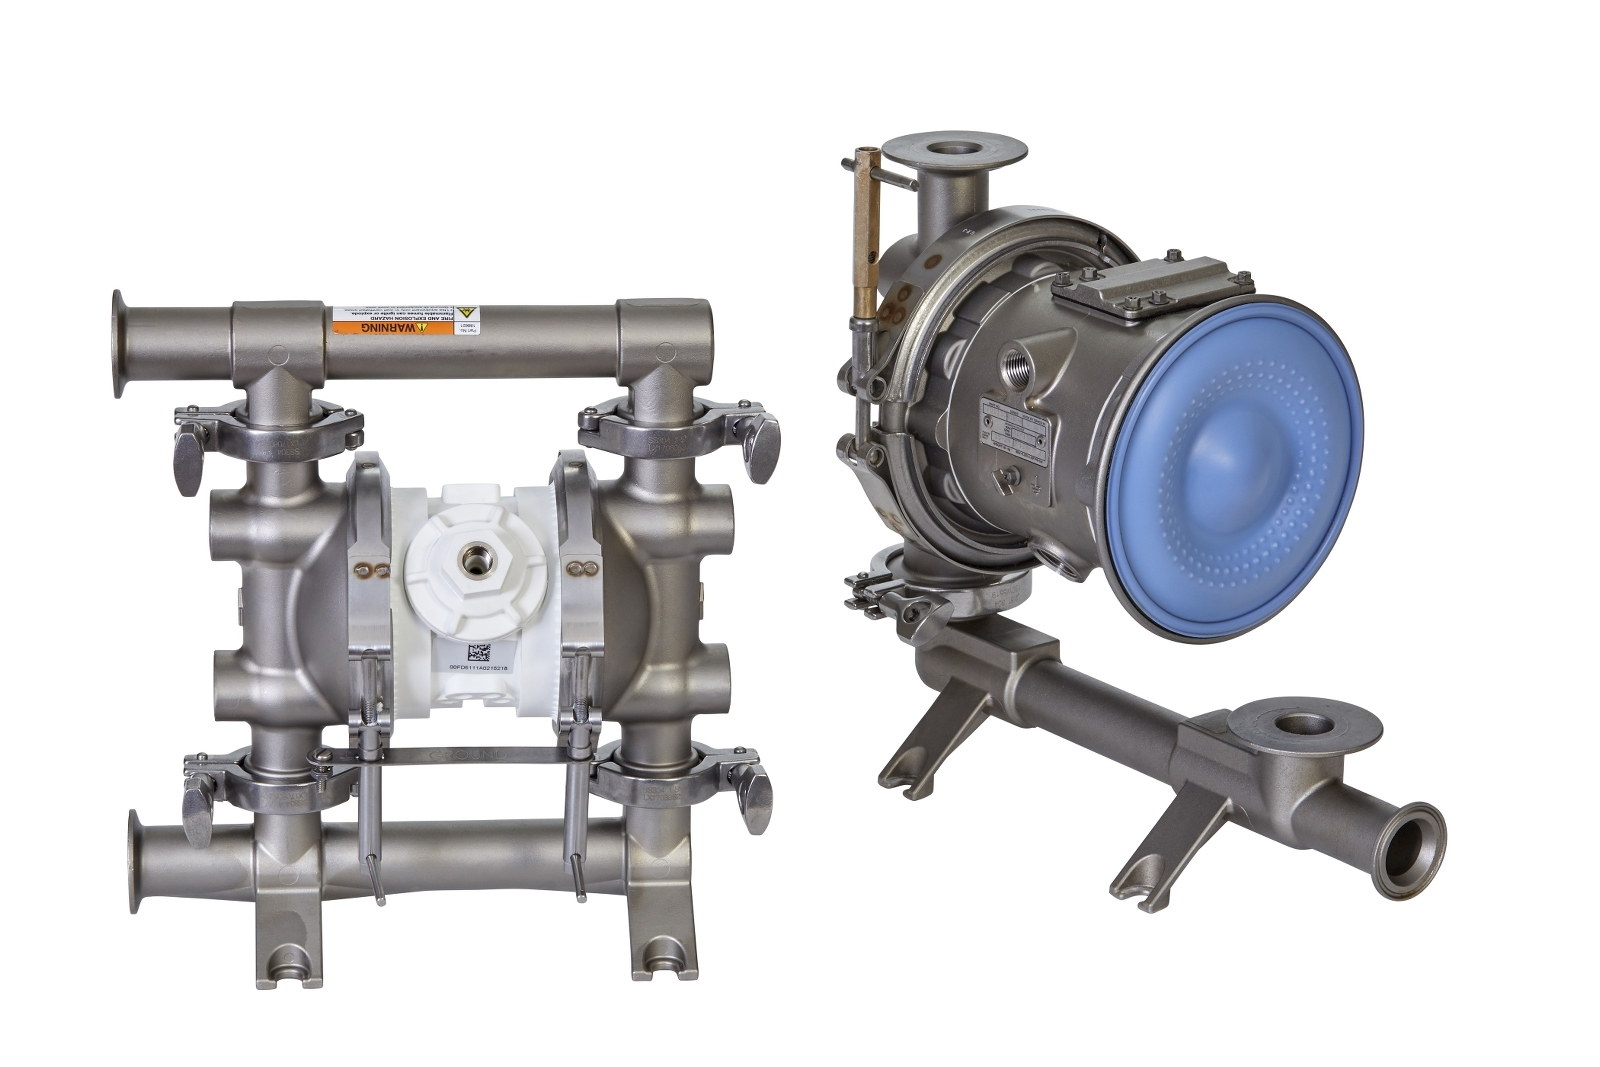 Sanitary stainless steel diaphragm pump